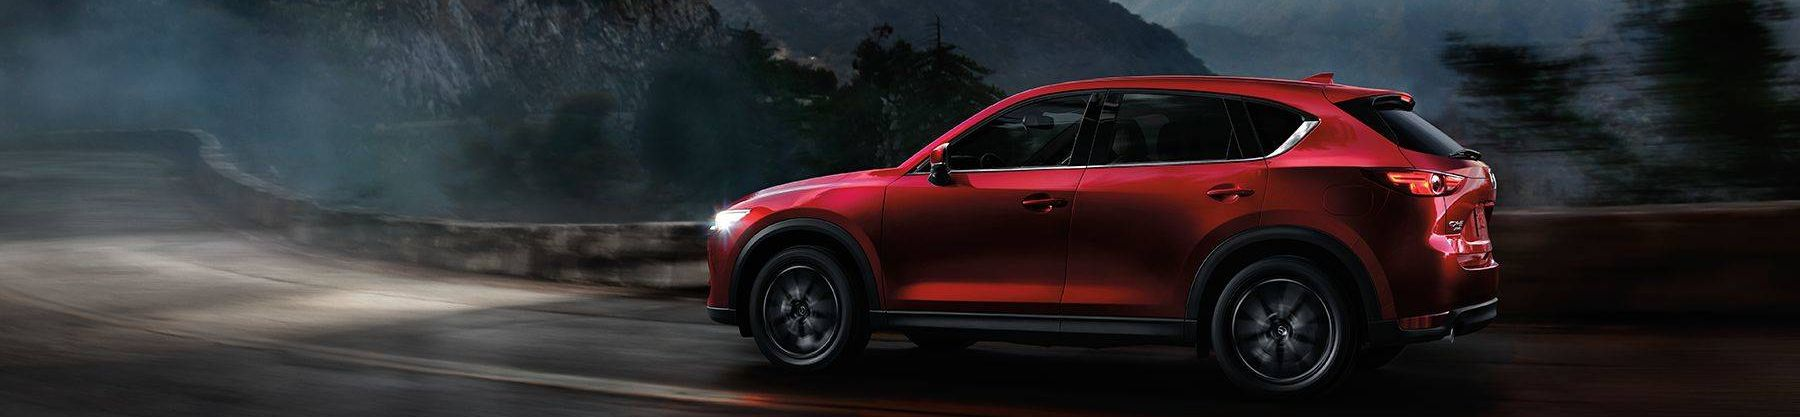 2018 Mazda CX-5 IIHS Top Safety Pick Plus near LaPorte, TX